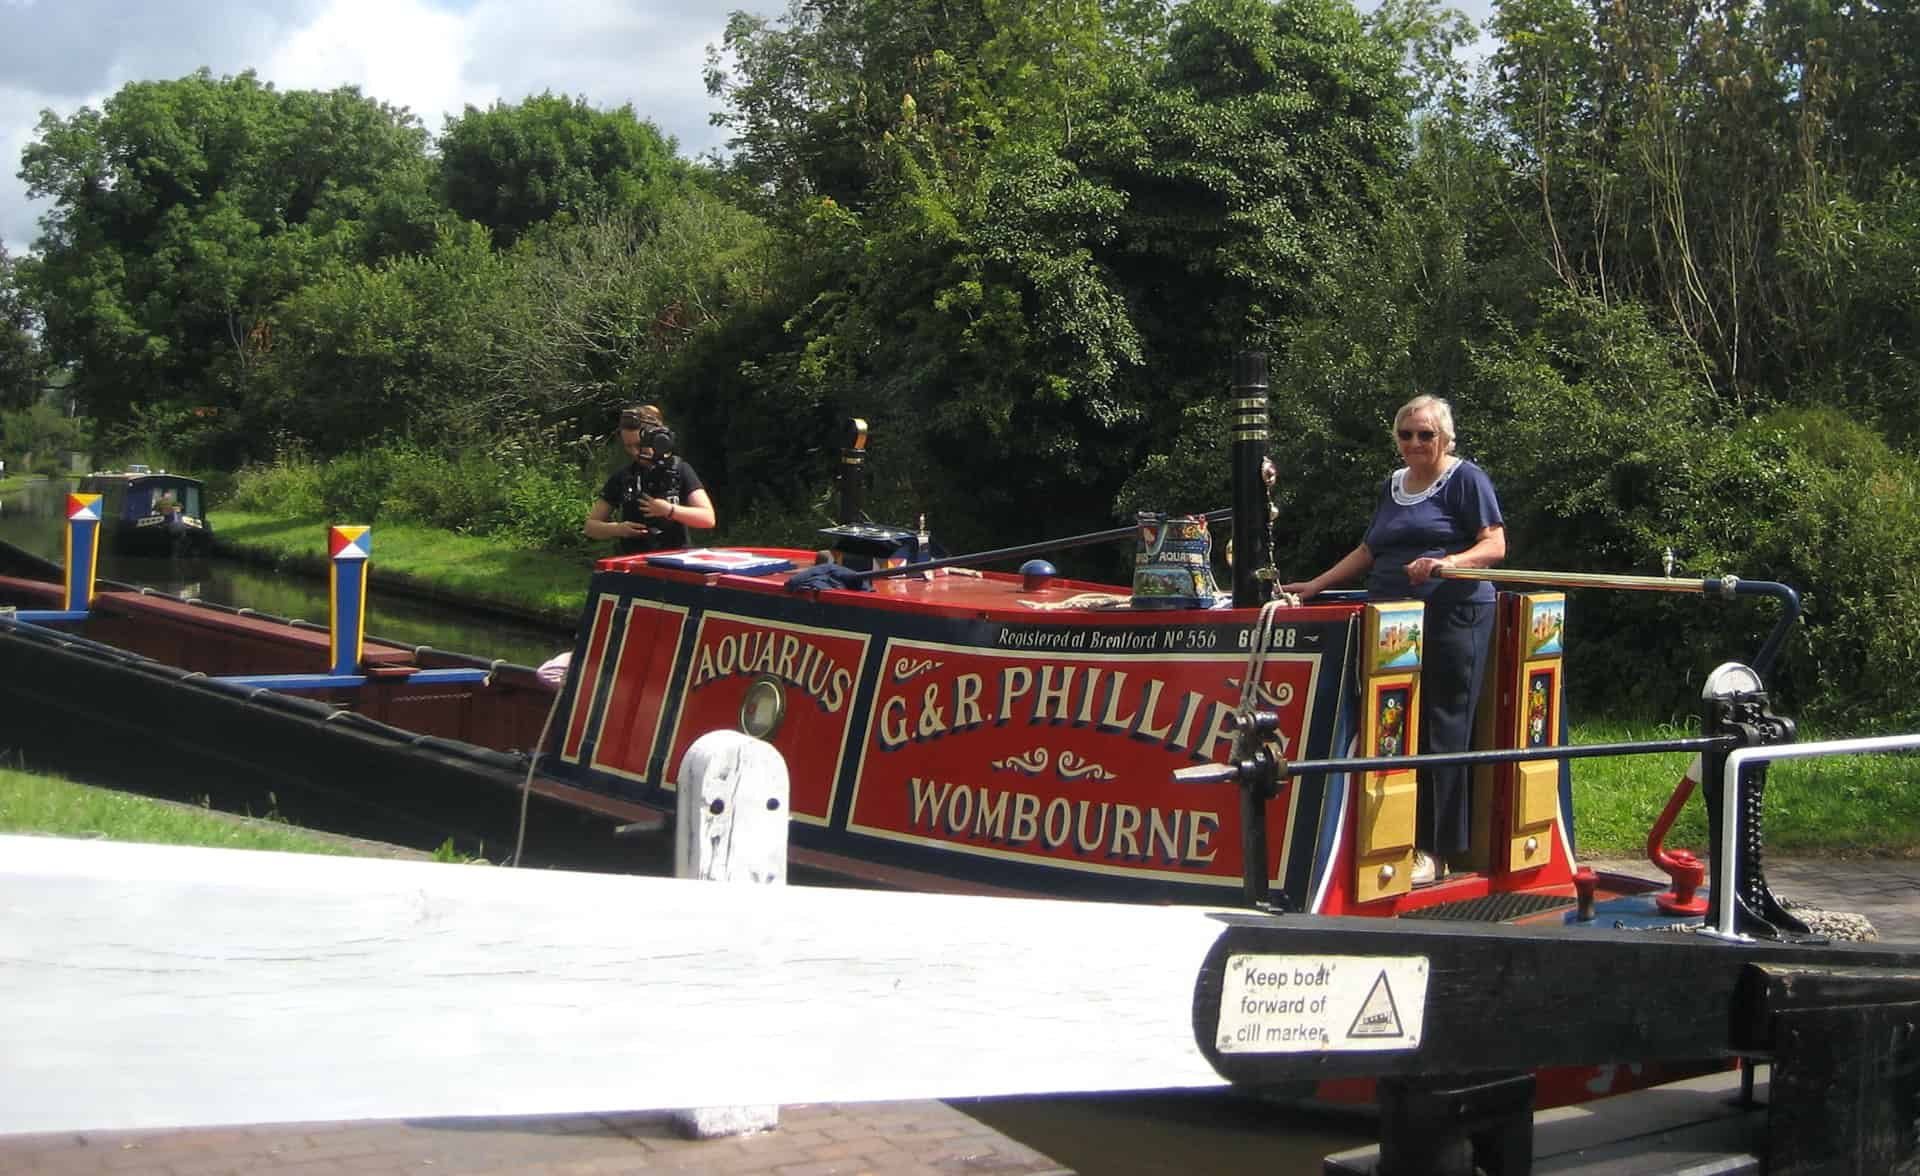 Filmmaker Lauren with Ruth on the narrowboat.